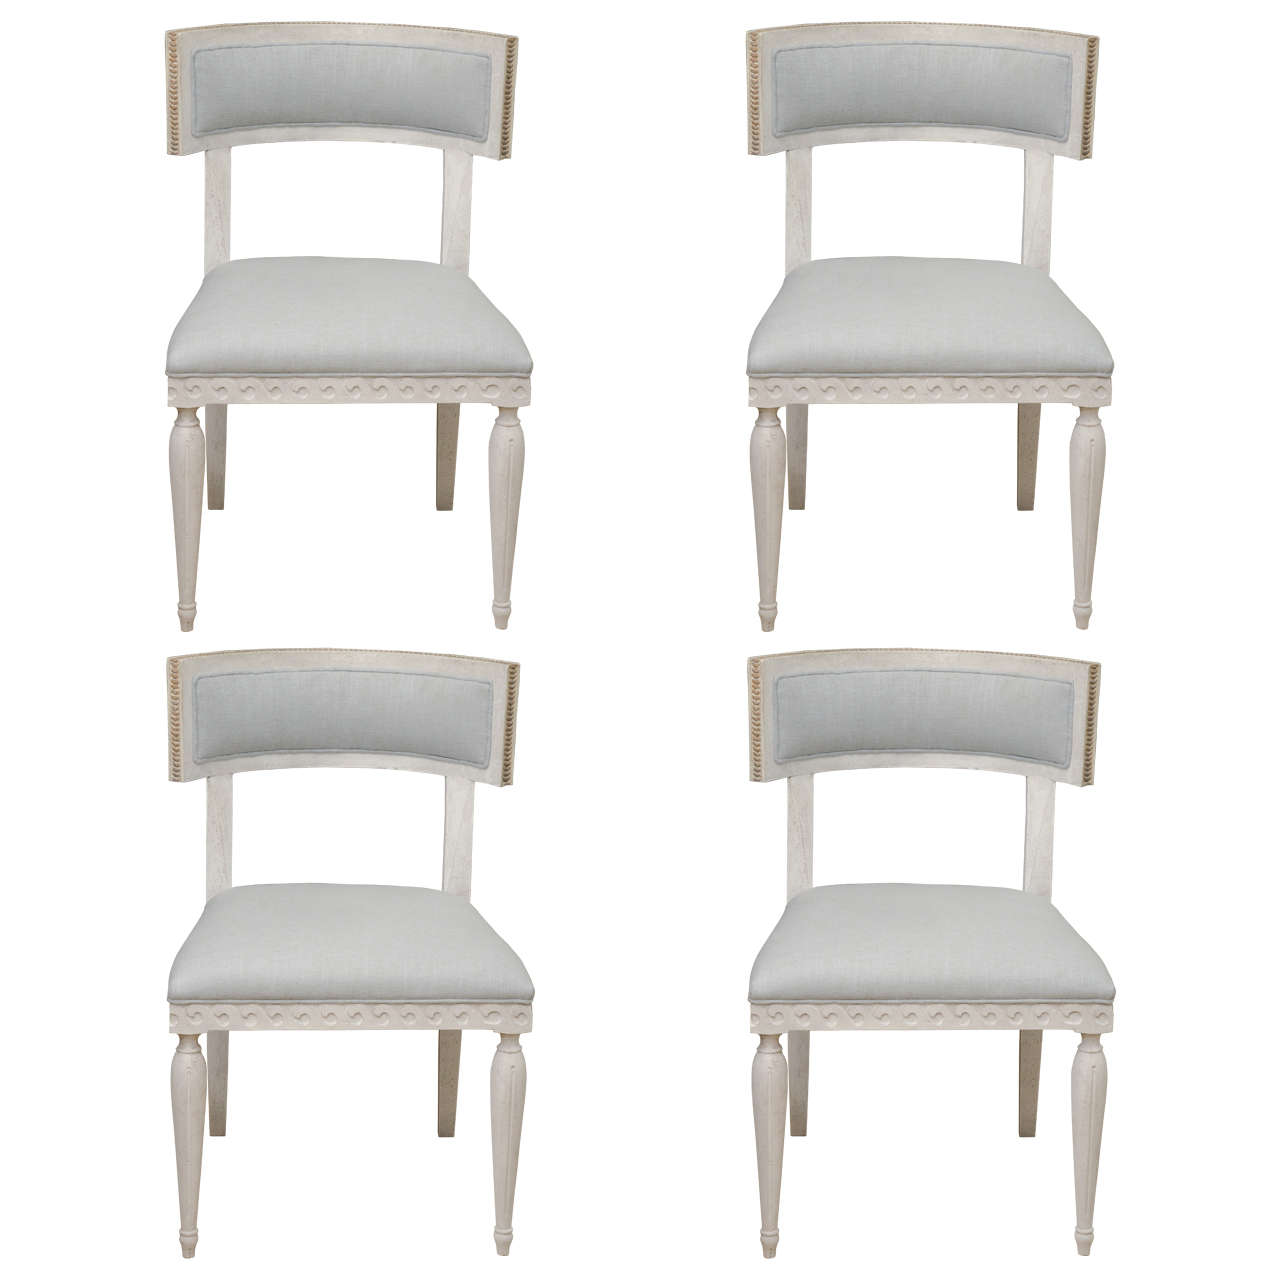 Set of 4 Chalk White Round Back Dining Chairs For Sale at 1stdibs